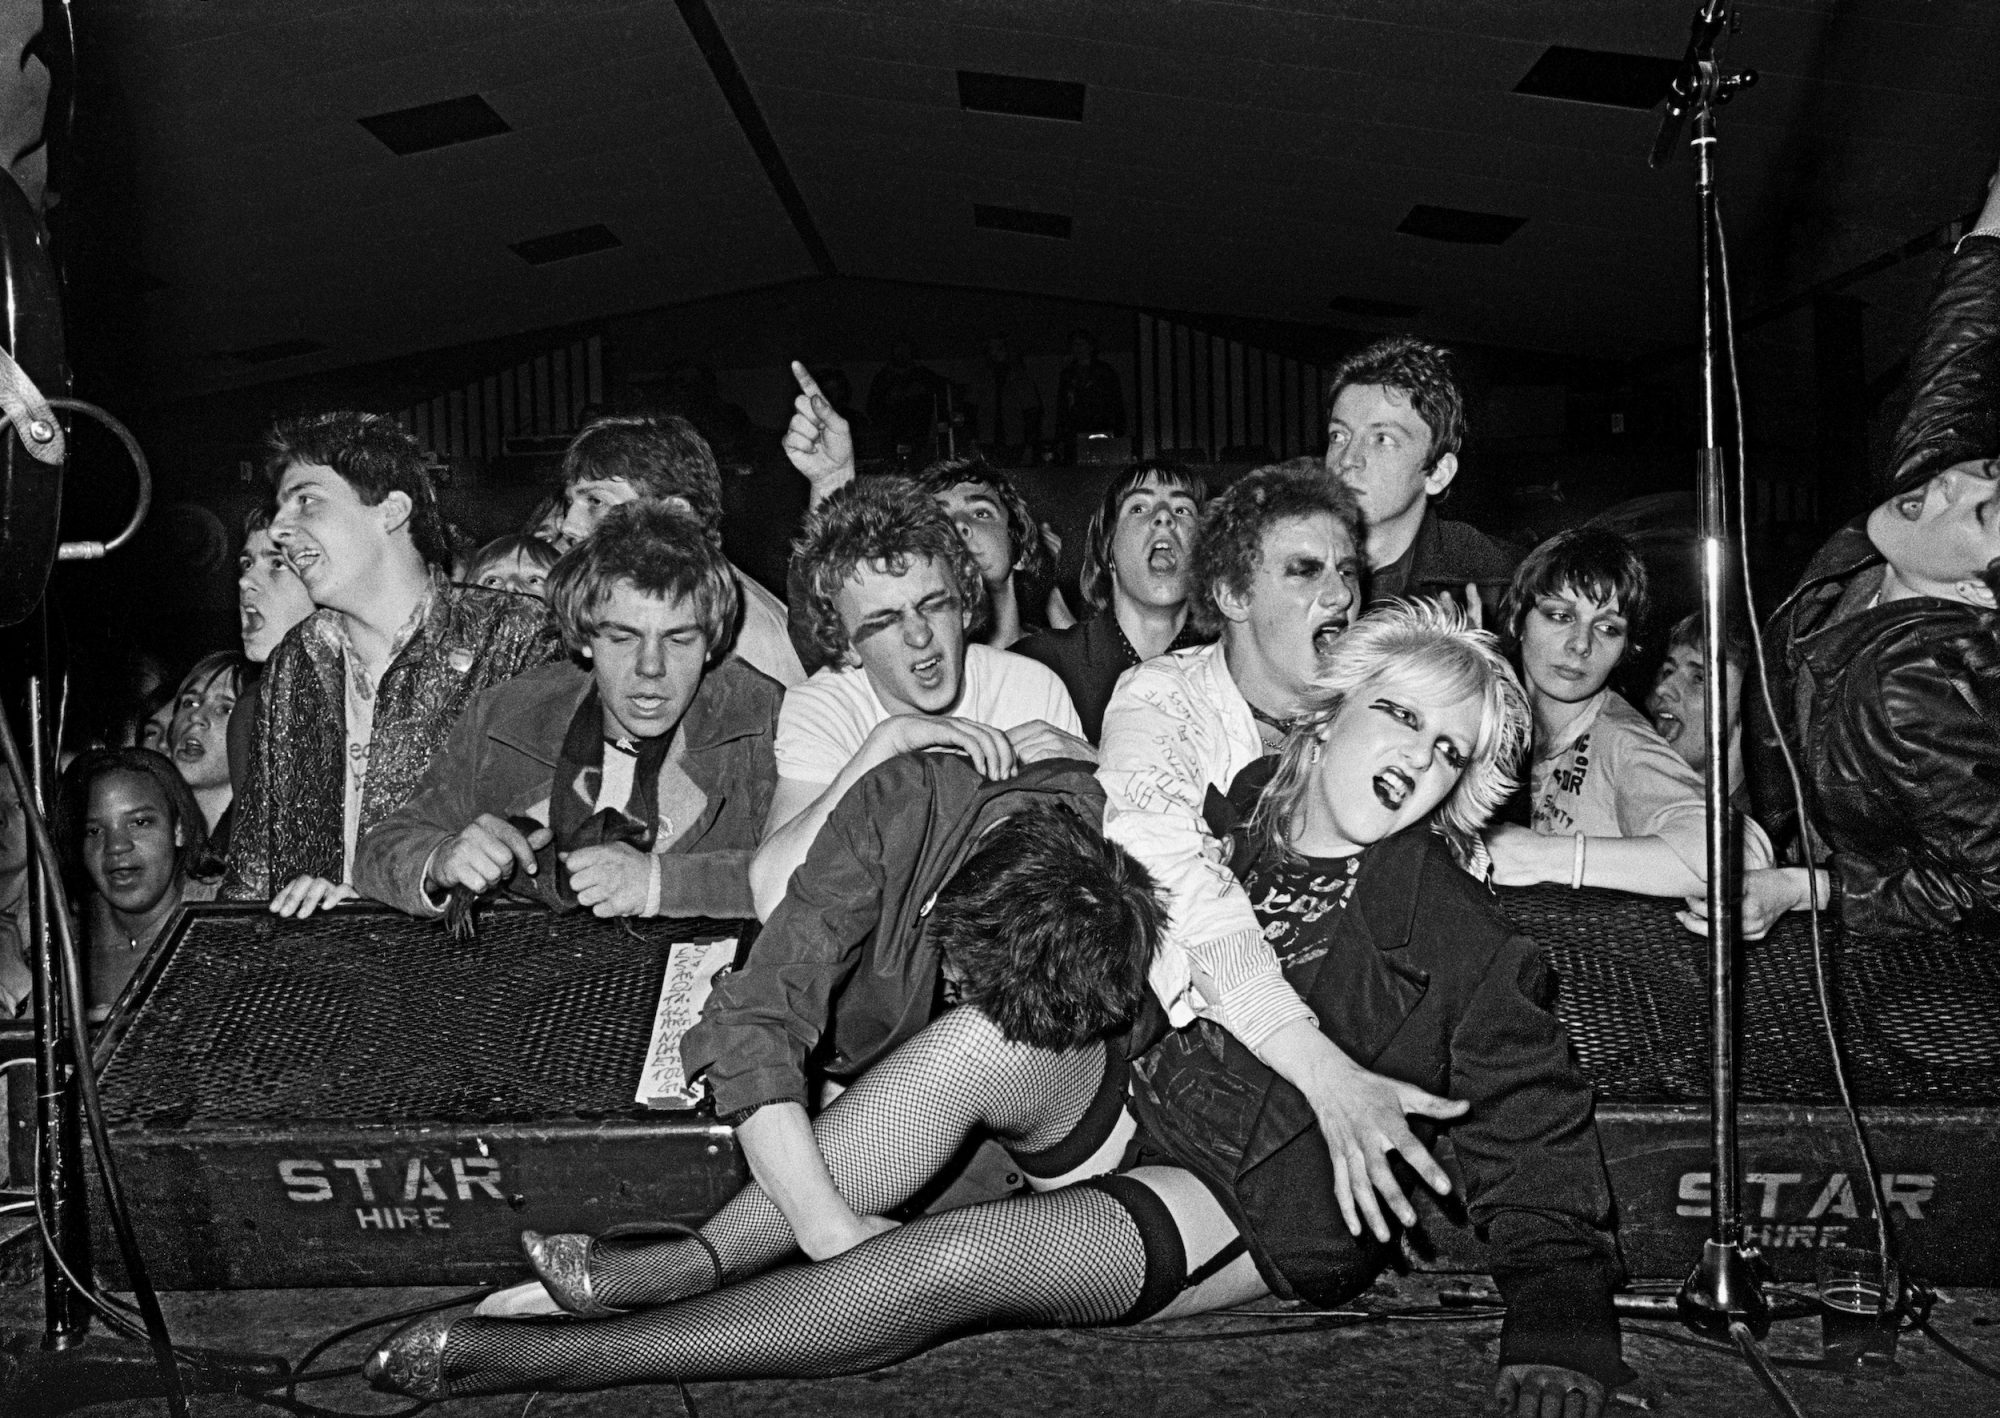 Militant Entertainment Tour, West Runton Pavilion, Cromer, Norfolk 1979 by Syd Shelton